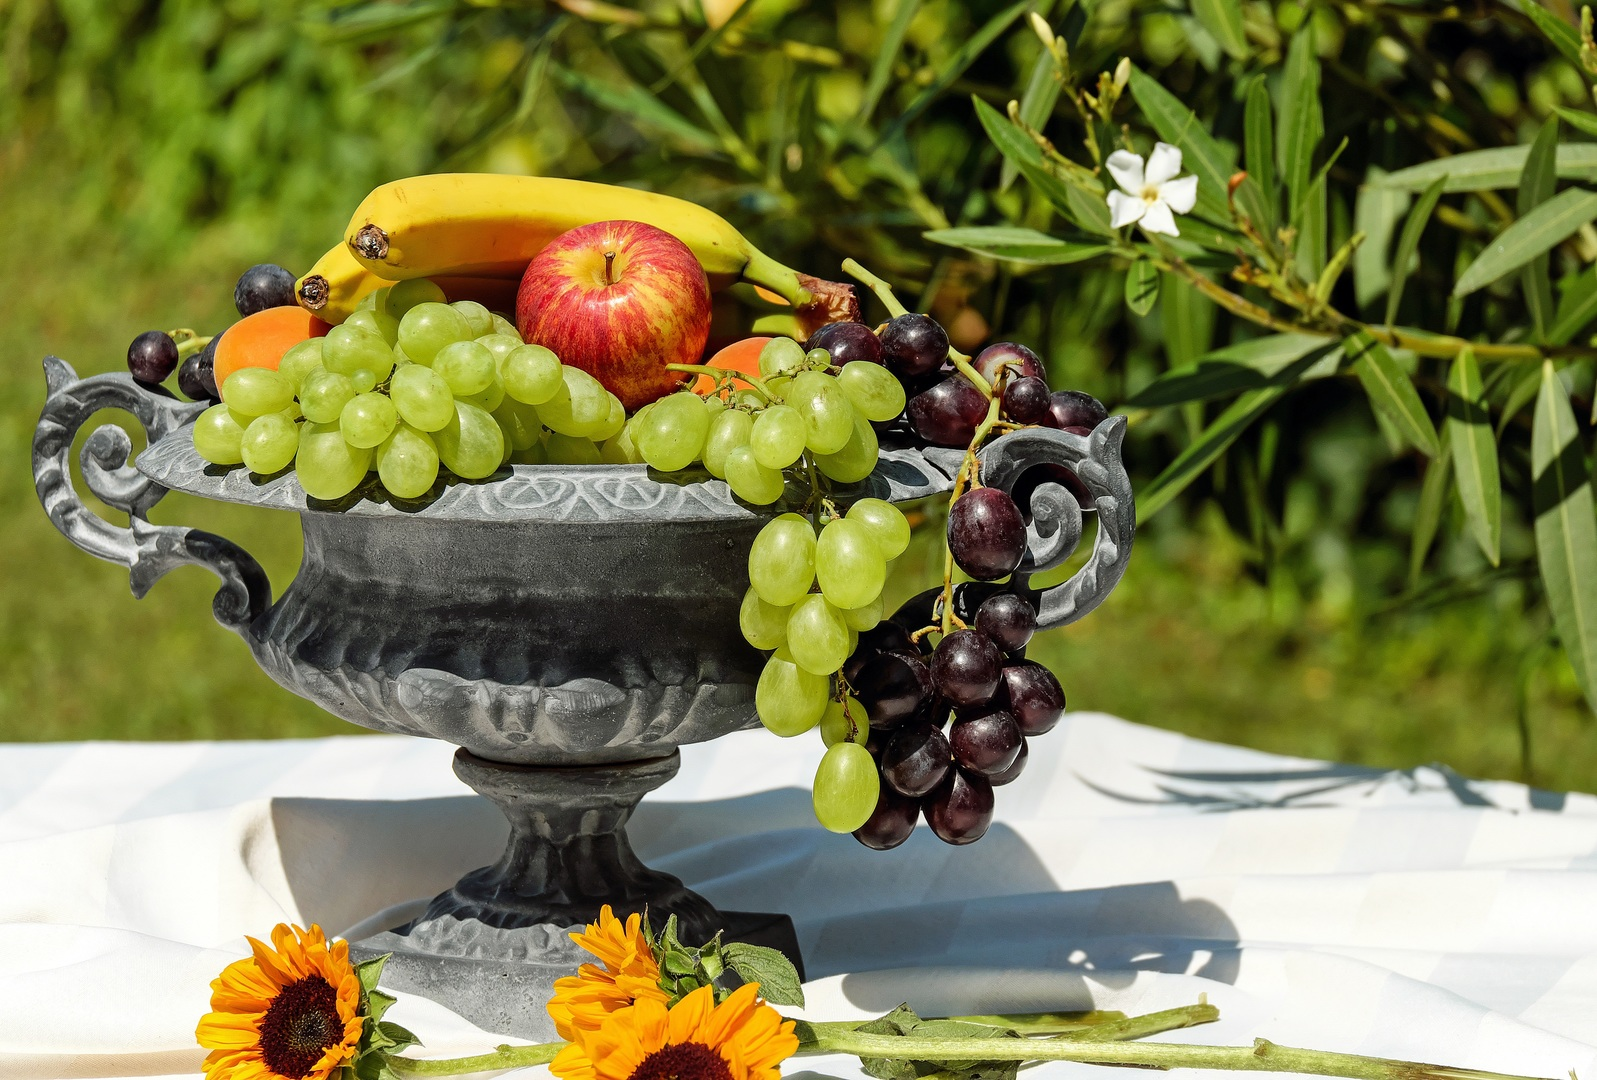 Grapes are a non-climacterictype of fruit